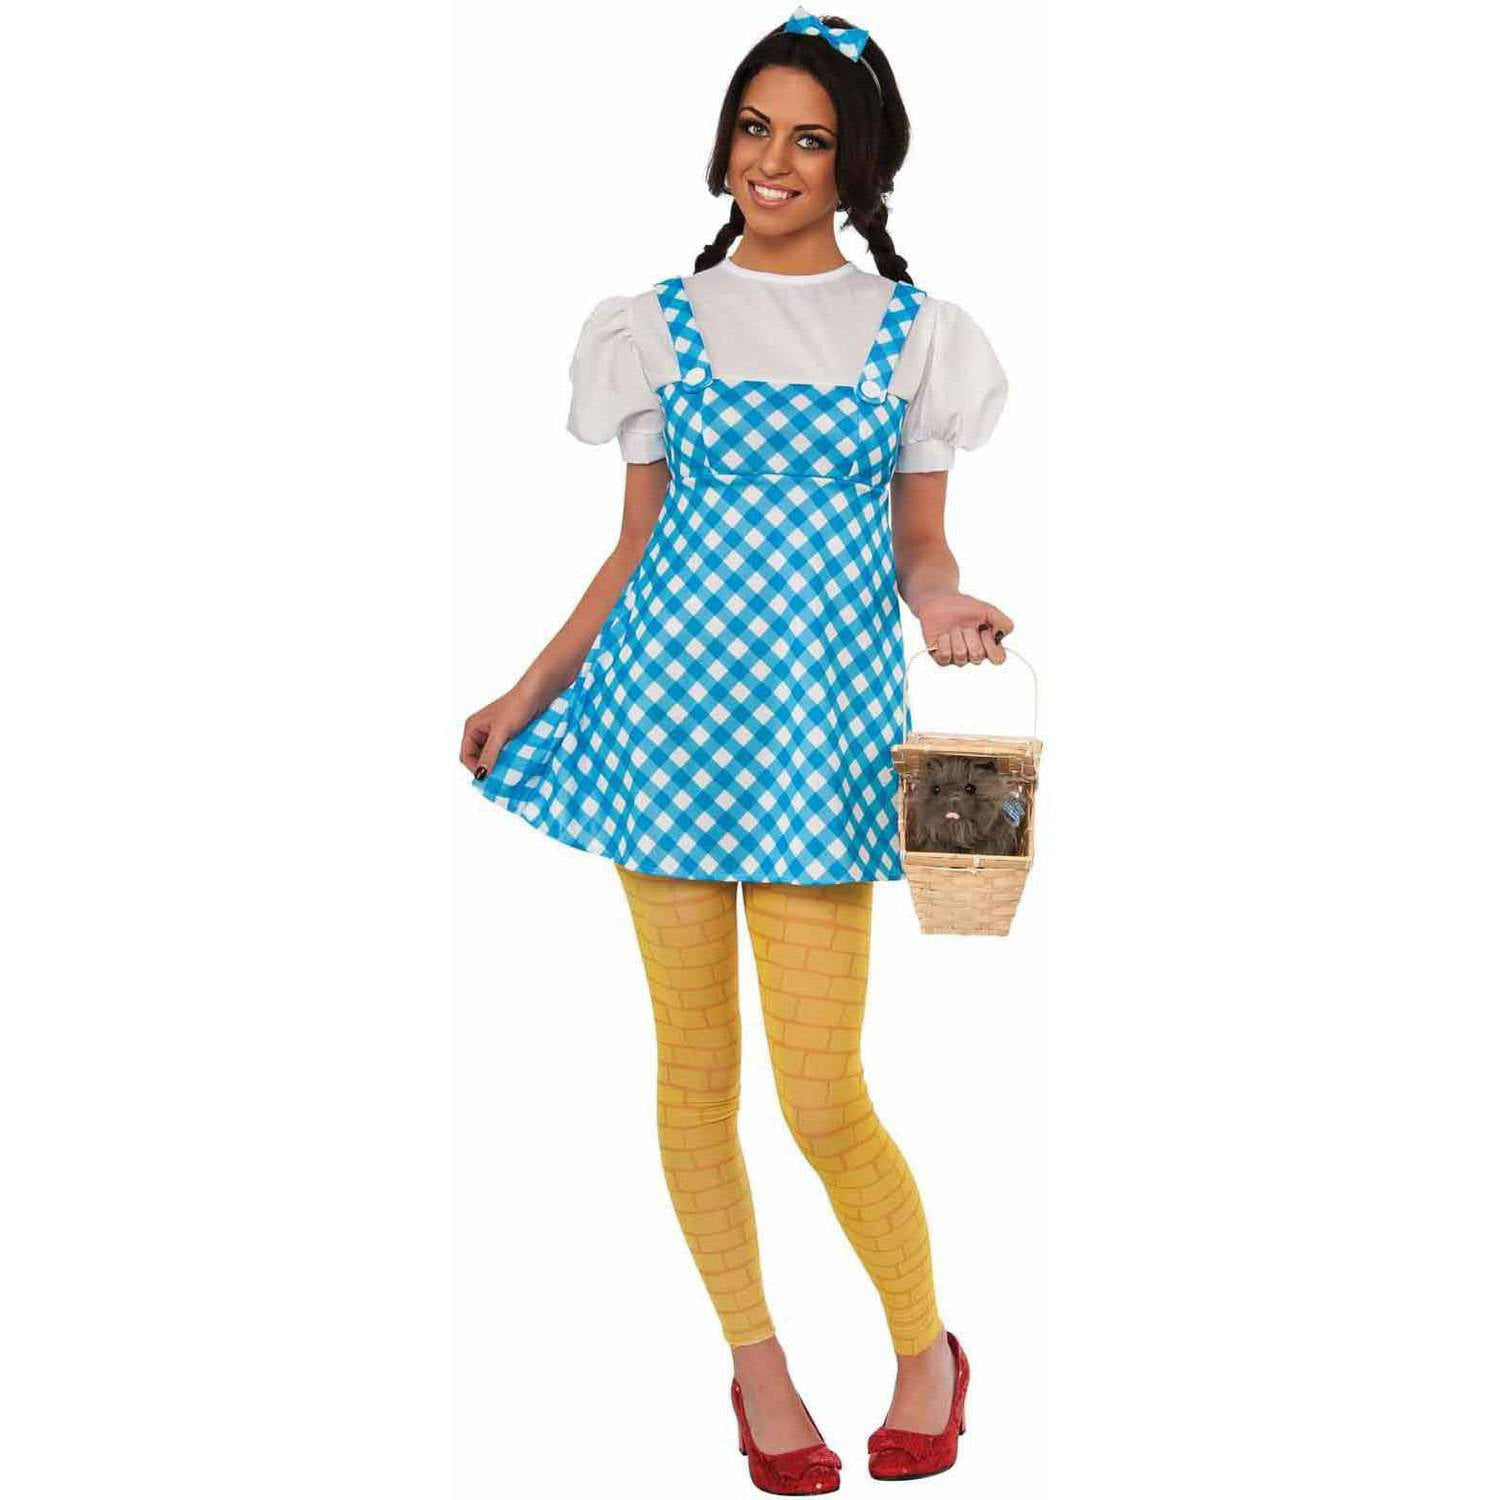 Wizard Of Oz Young Adult Dorothy Dress Womenu0027s Adult Halloween Costume - Walmart.com  sc 1 st  Walmart : dorthy costumes  - Germanpascual.Com